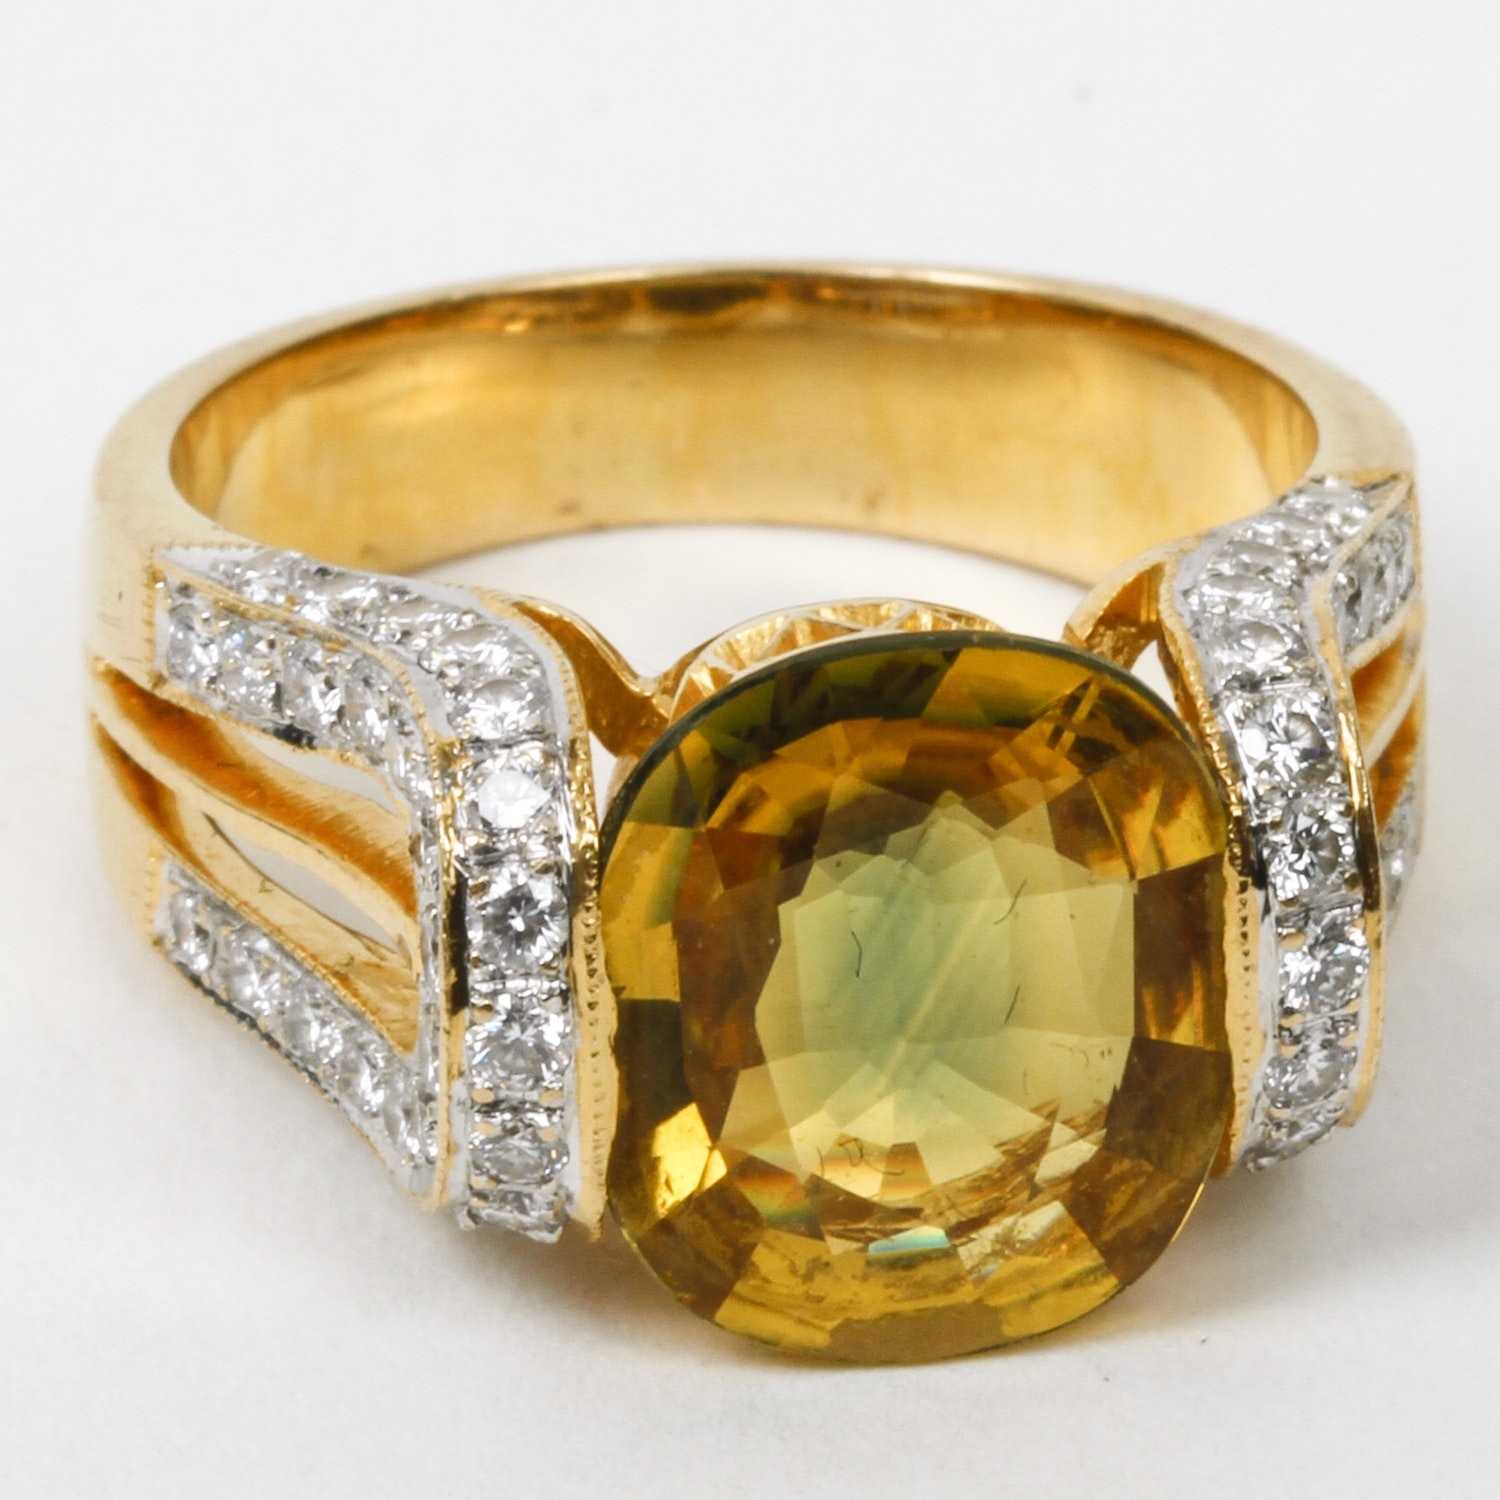 18K Yellow Gold, 3.50 CTS Yellow Sapphire, and 1.00 CTW Diamond Cocktail Ring